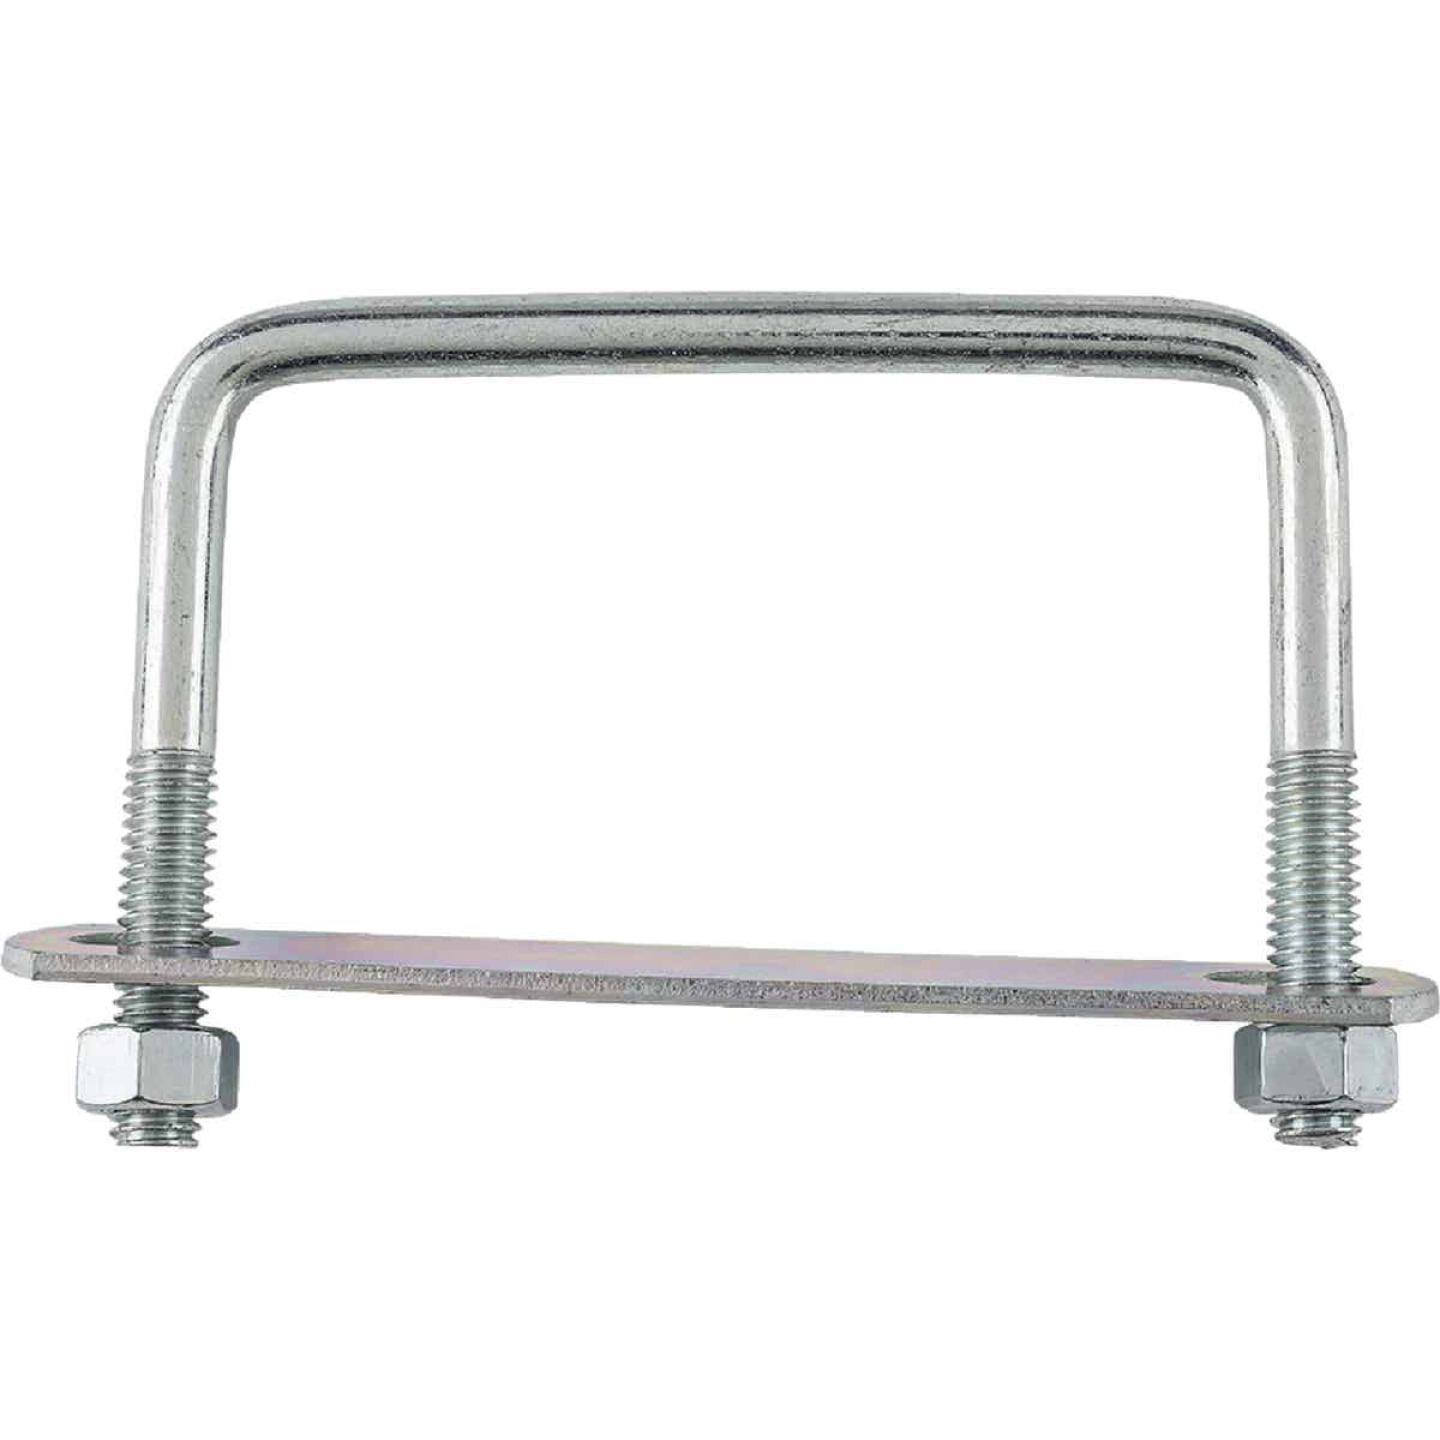 National 3/8 In. x 4 In. x 3 In. Zinc Square U Bolt Image 2